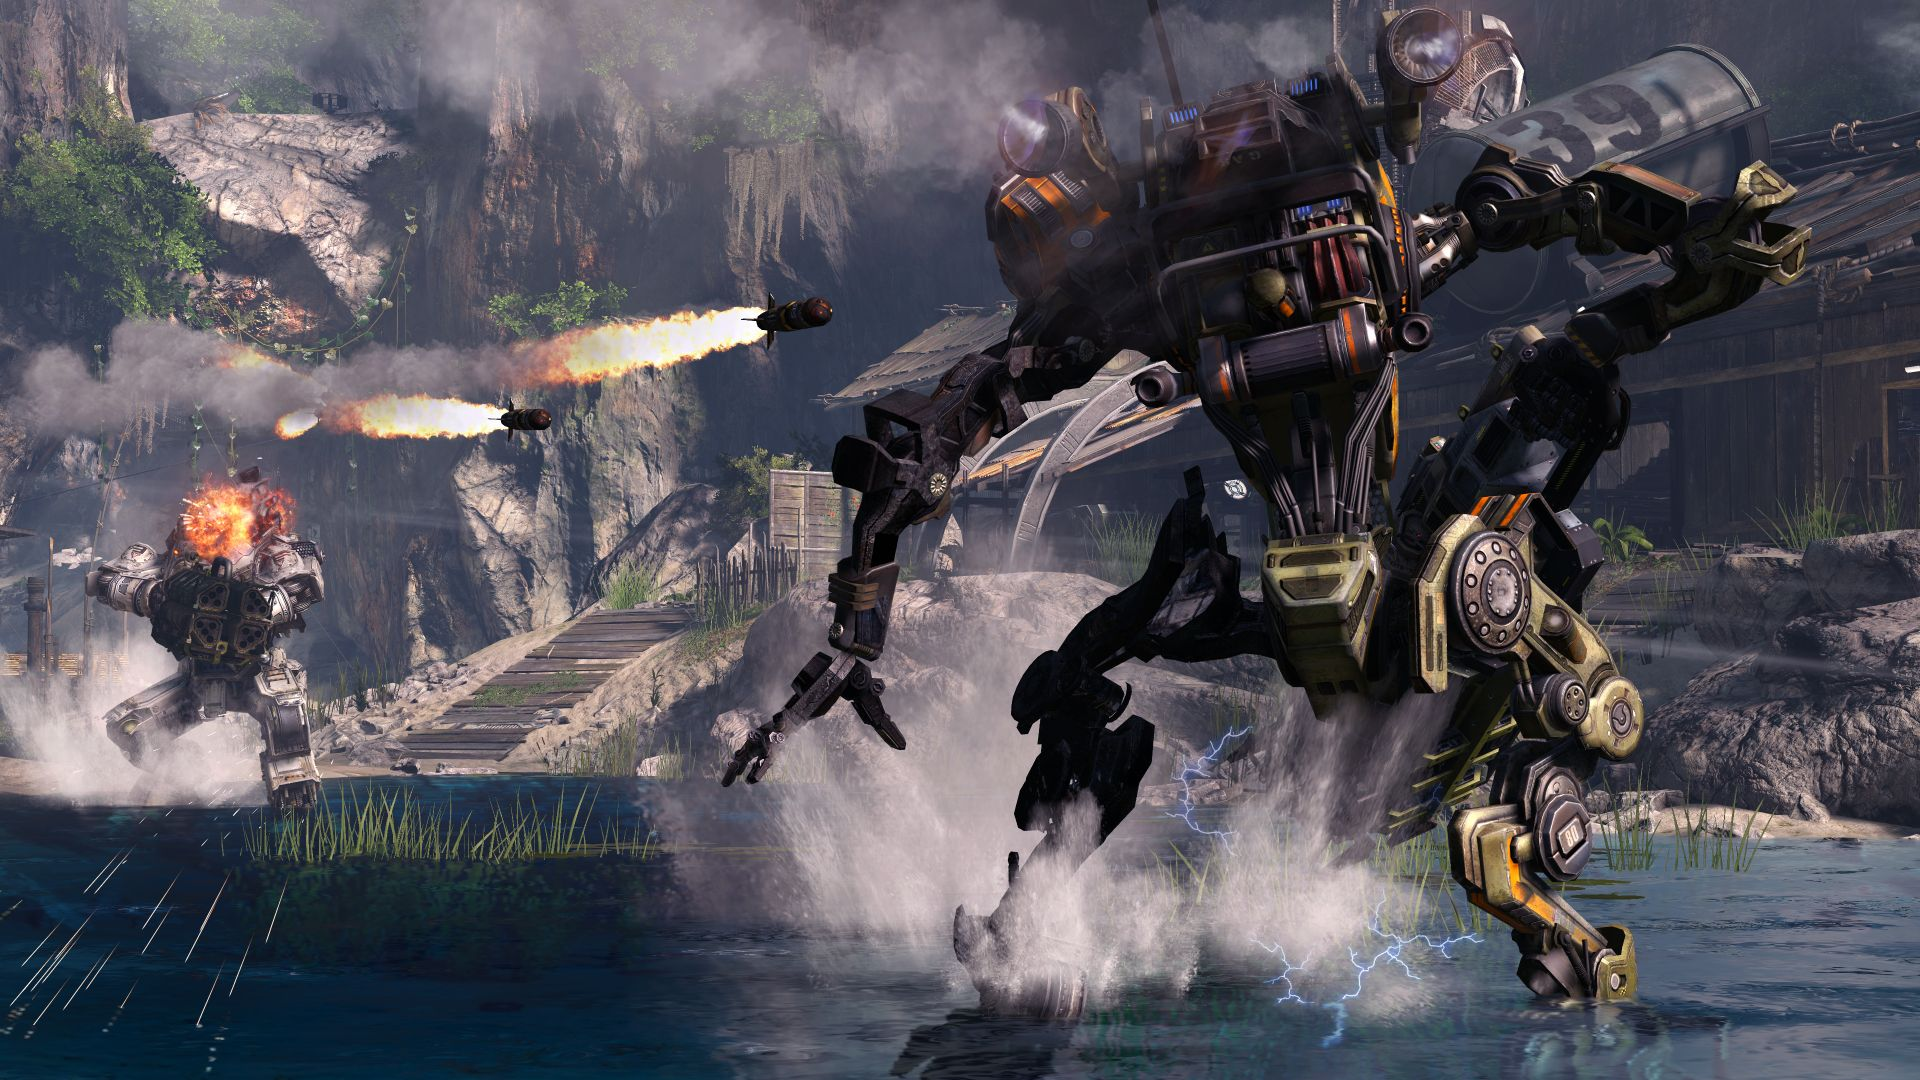 titanfall wallpaper 47081 1920x1080 px ~ hdwallsource